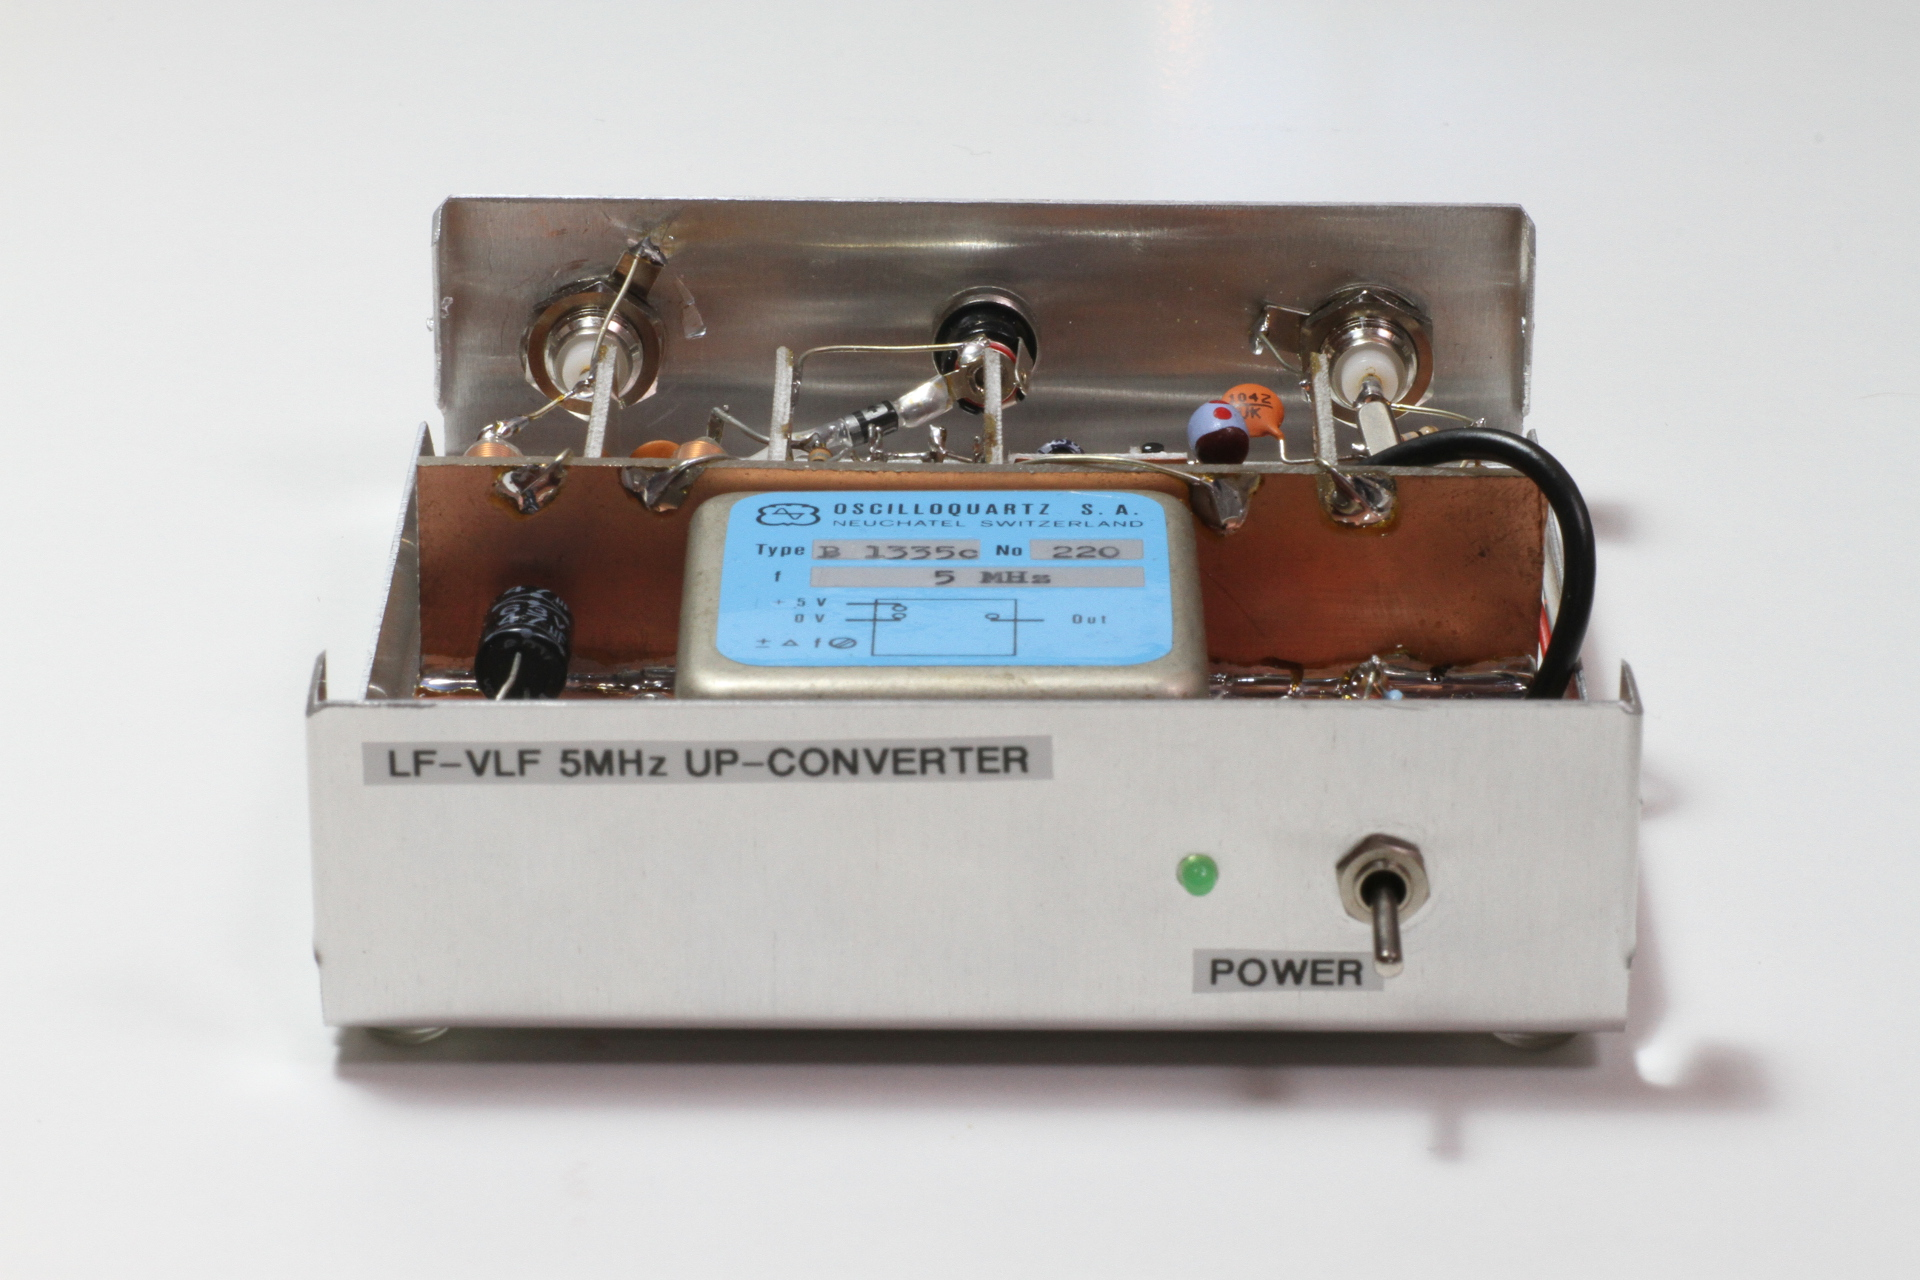 An up-converter for receiving long and very long waves